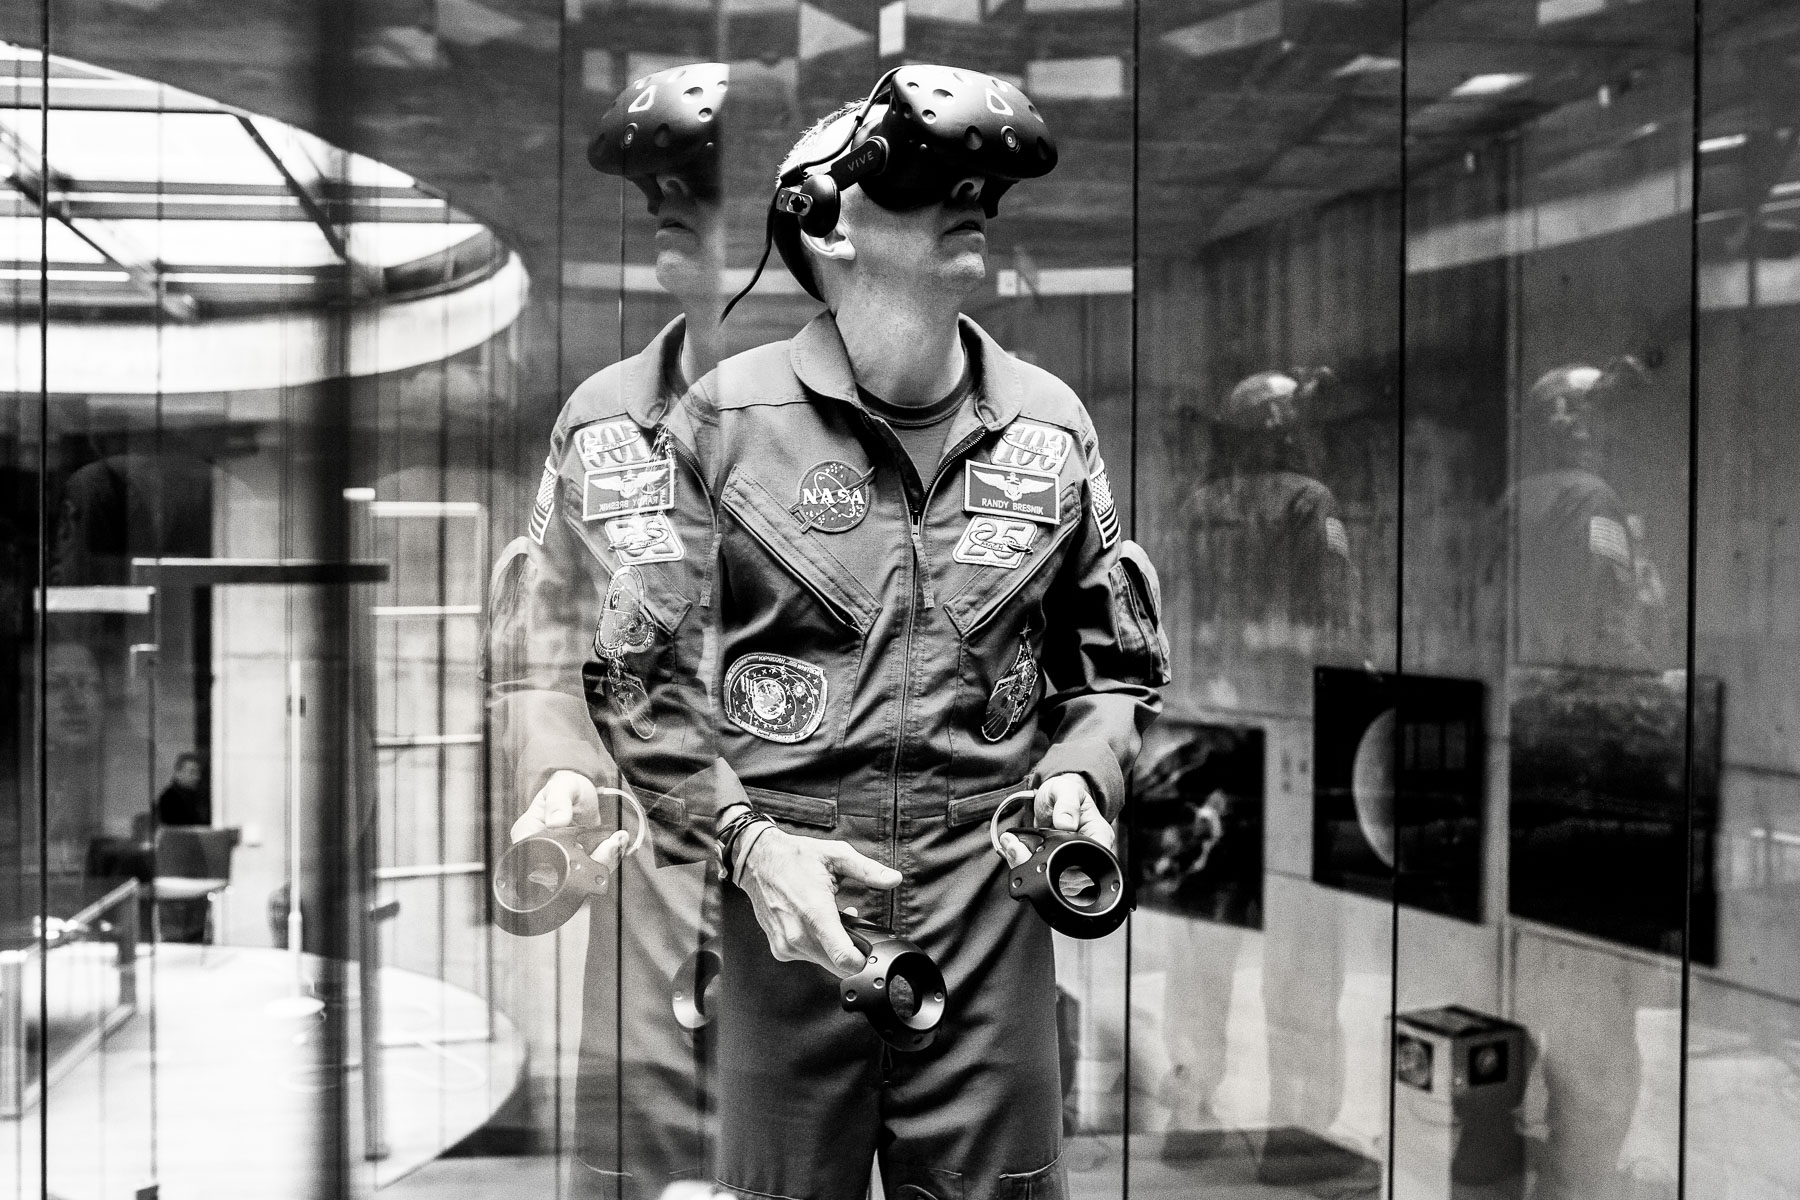 Randy plays a virtual reality space game during a visit to the Herman Potocnik Noordung space center in Vitanje on his second day of visit to Slovenia, the country of his ancestors.